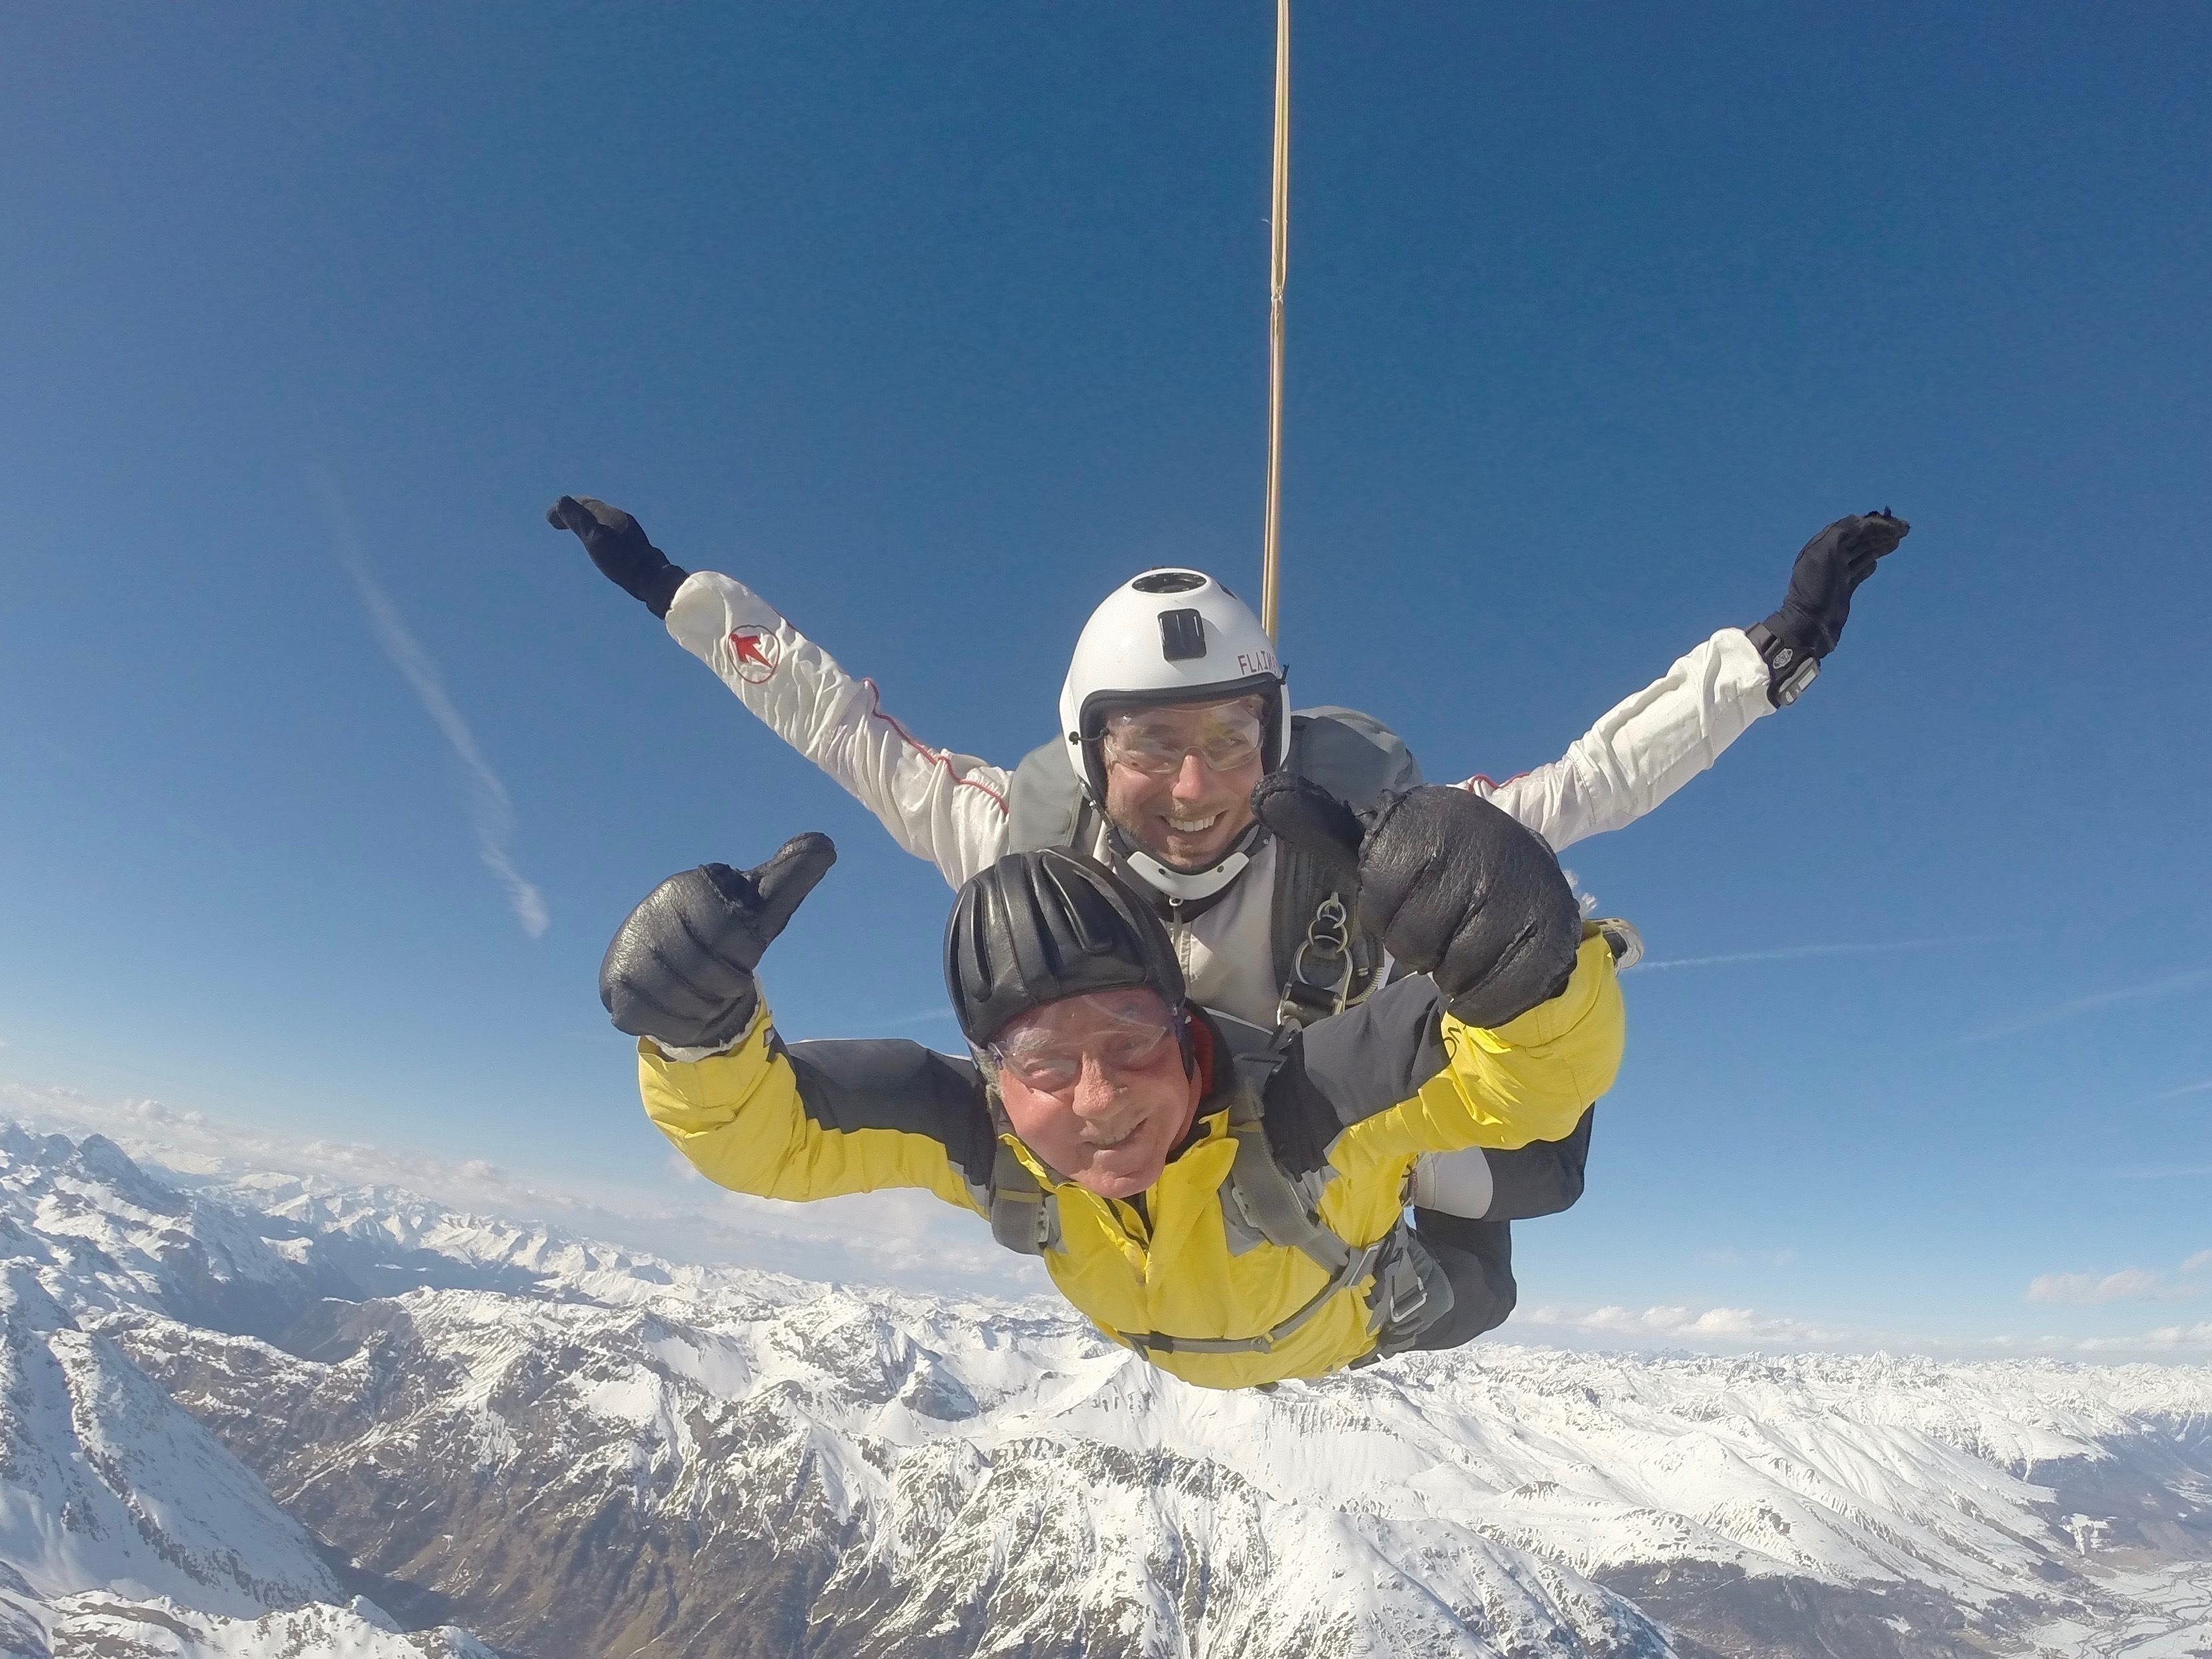 Engadinsky: Free fall over the snowy Engadine from 5200 metres!